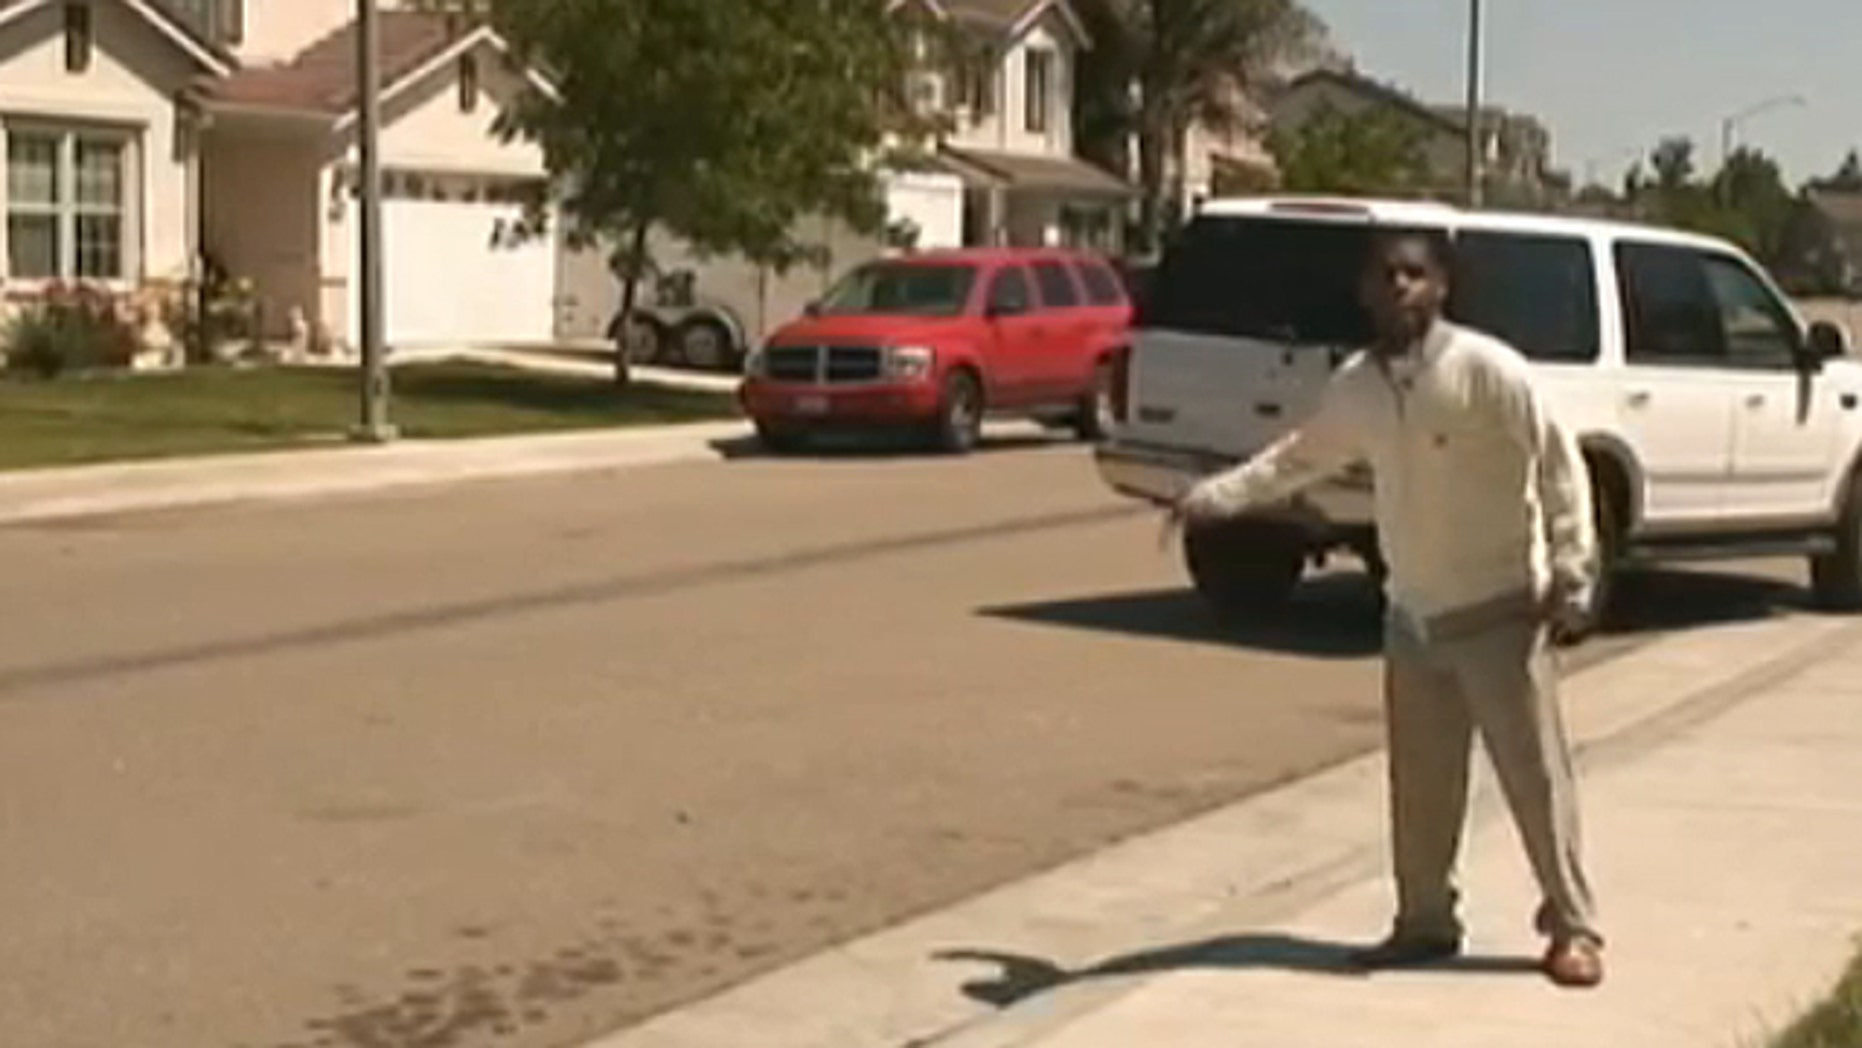 Kenneth Wright, who could not be reached for comment on Wednesday, told ABC News 10/KXTV he does not have a criminal record and had no reason to believe what he thought was a SWAT team would be breaking down his door before dawn. But according to a federal search warrant provided to the station by Wright, the Wrights are being investigated for alleged financial aid fraud. (ABC News 10/KXTV)